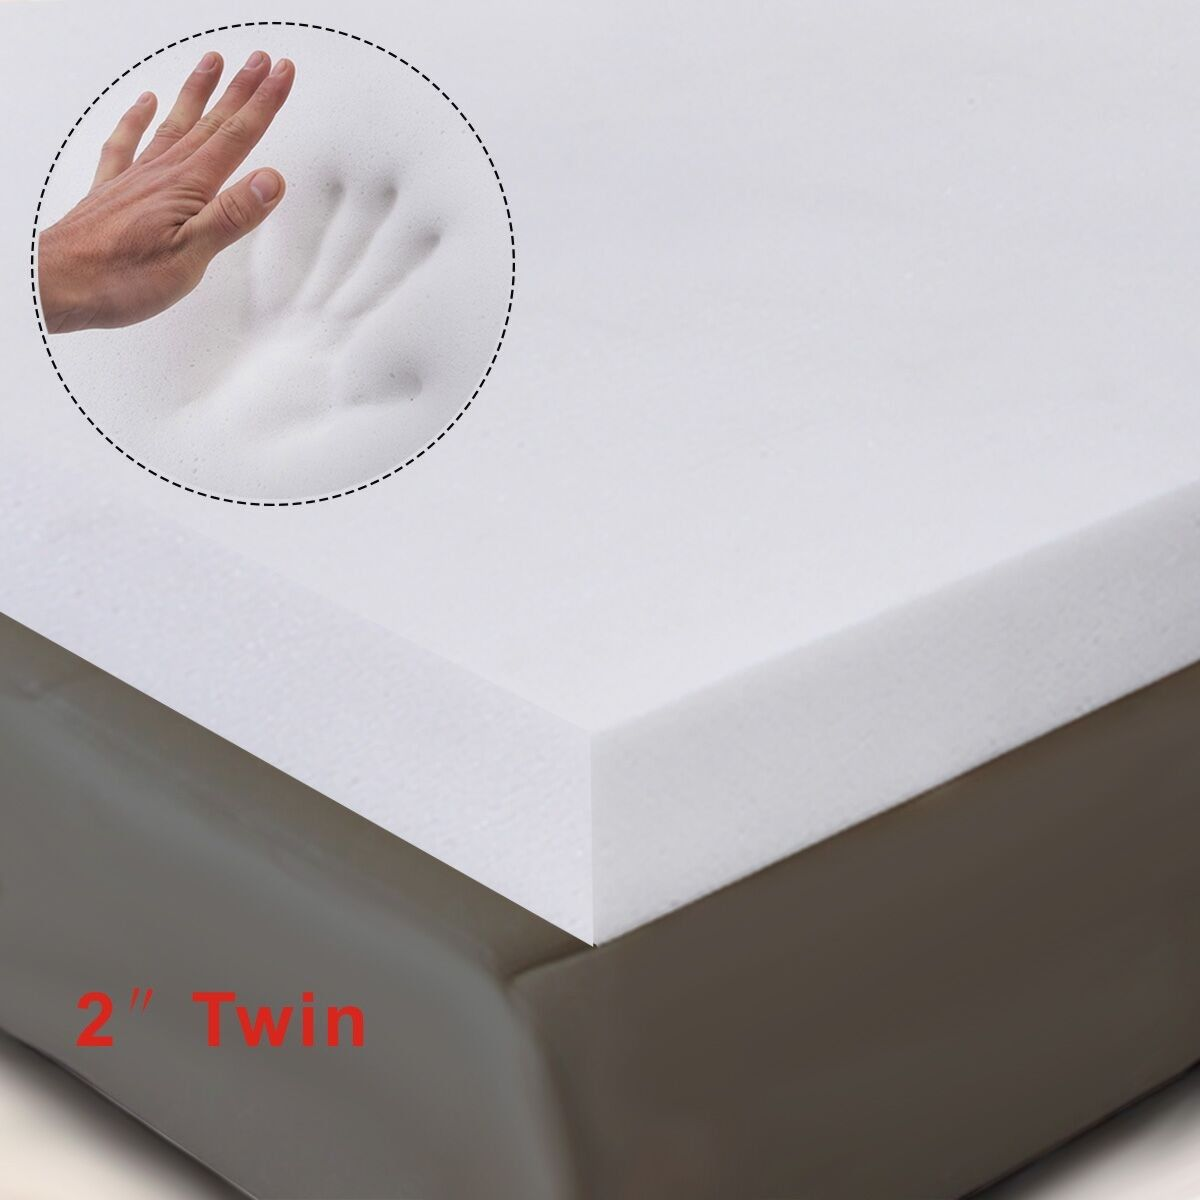 Costway 2'' Twin Size Memory Foam Mattress Pad, Bed Topper 75''x39''x2''